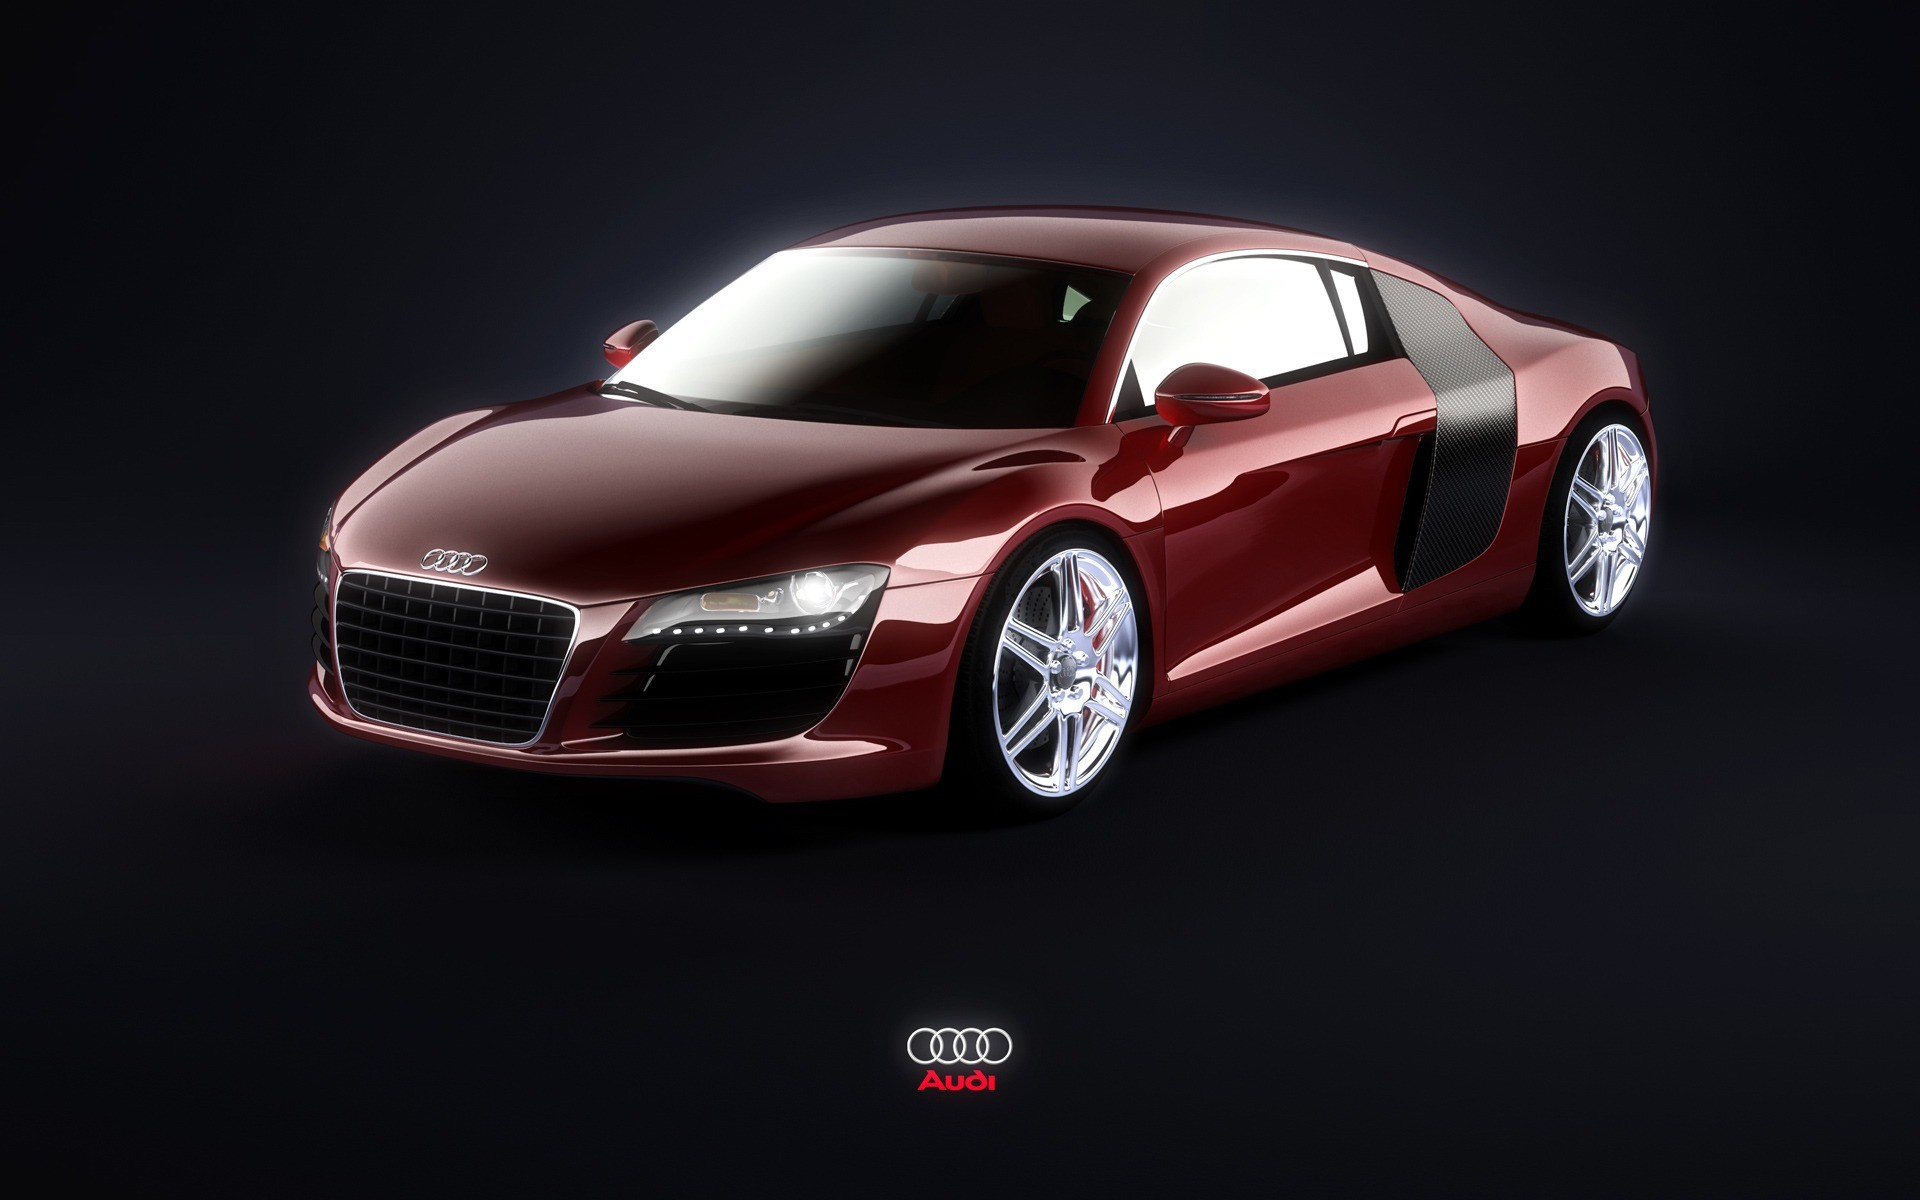 1920x1200 Red Audi R8 Wallpaper Audi Cars Wallpapers